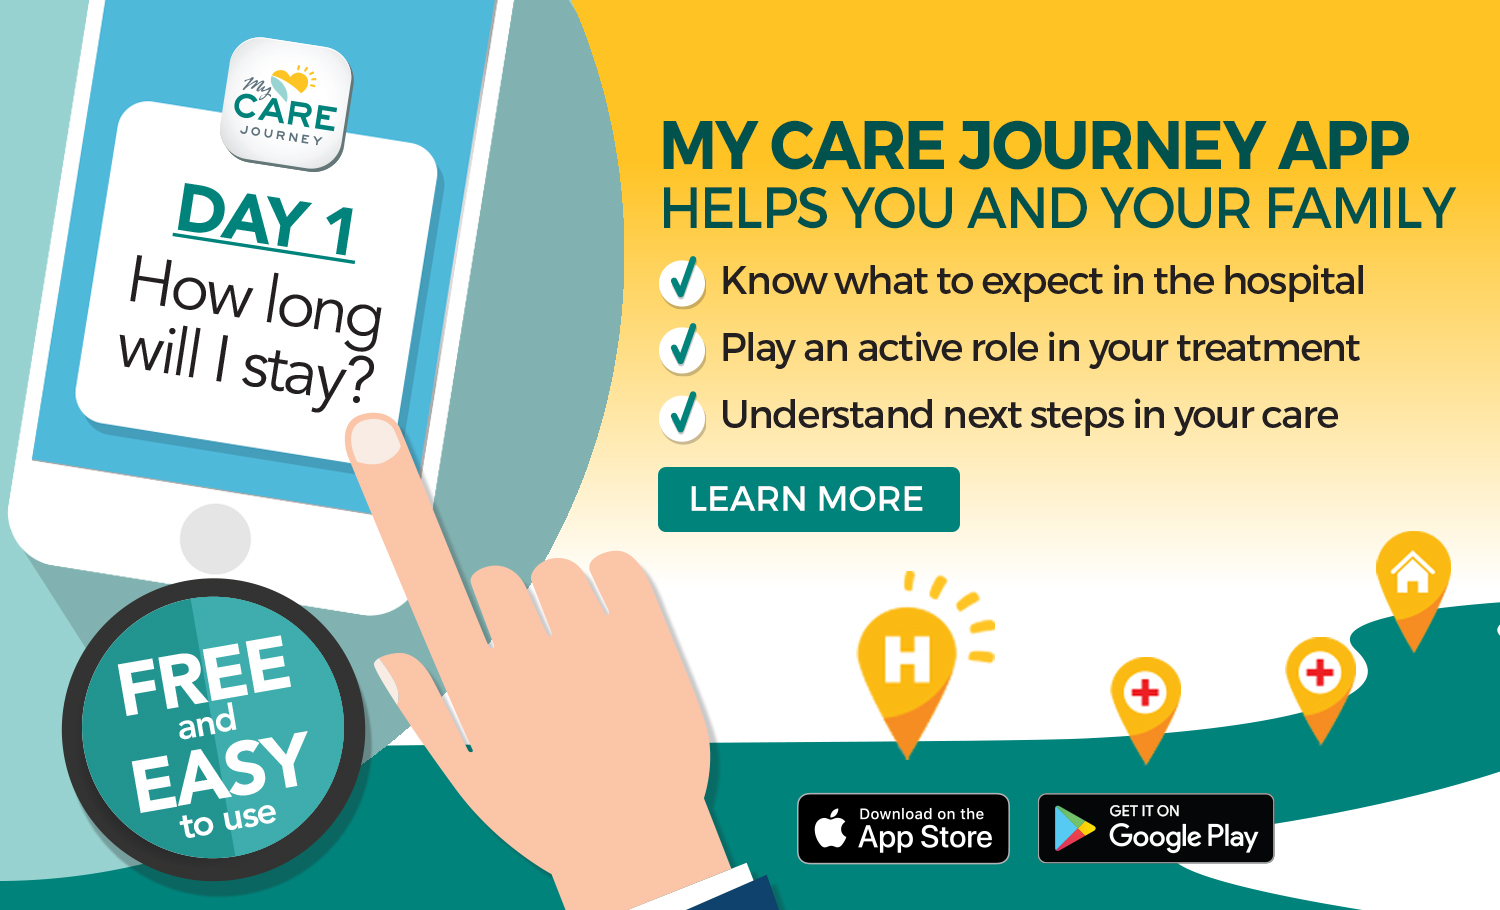 My Care Journey